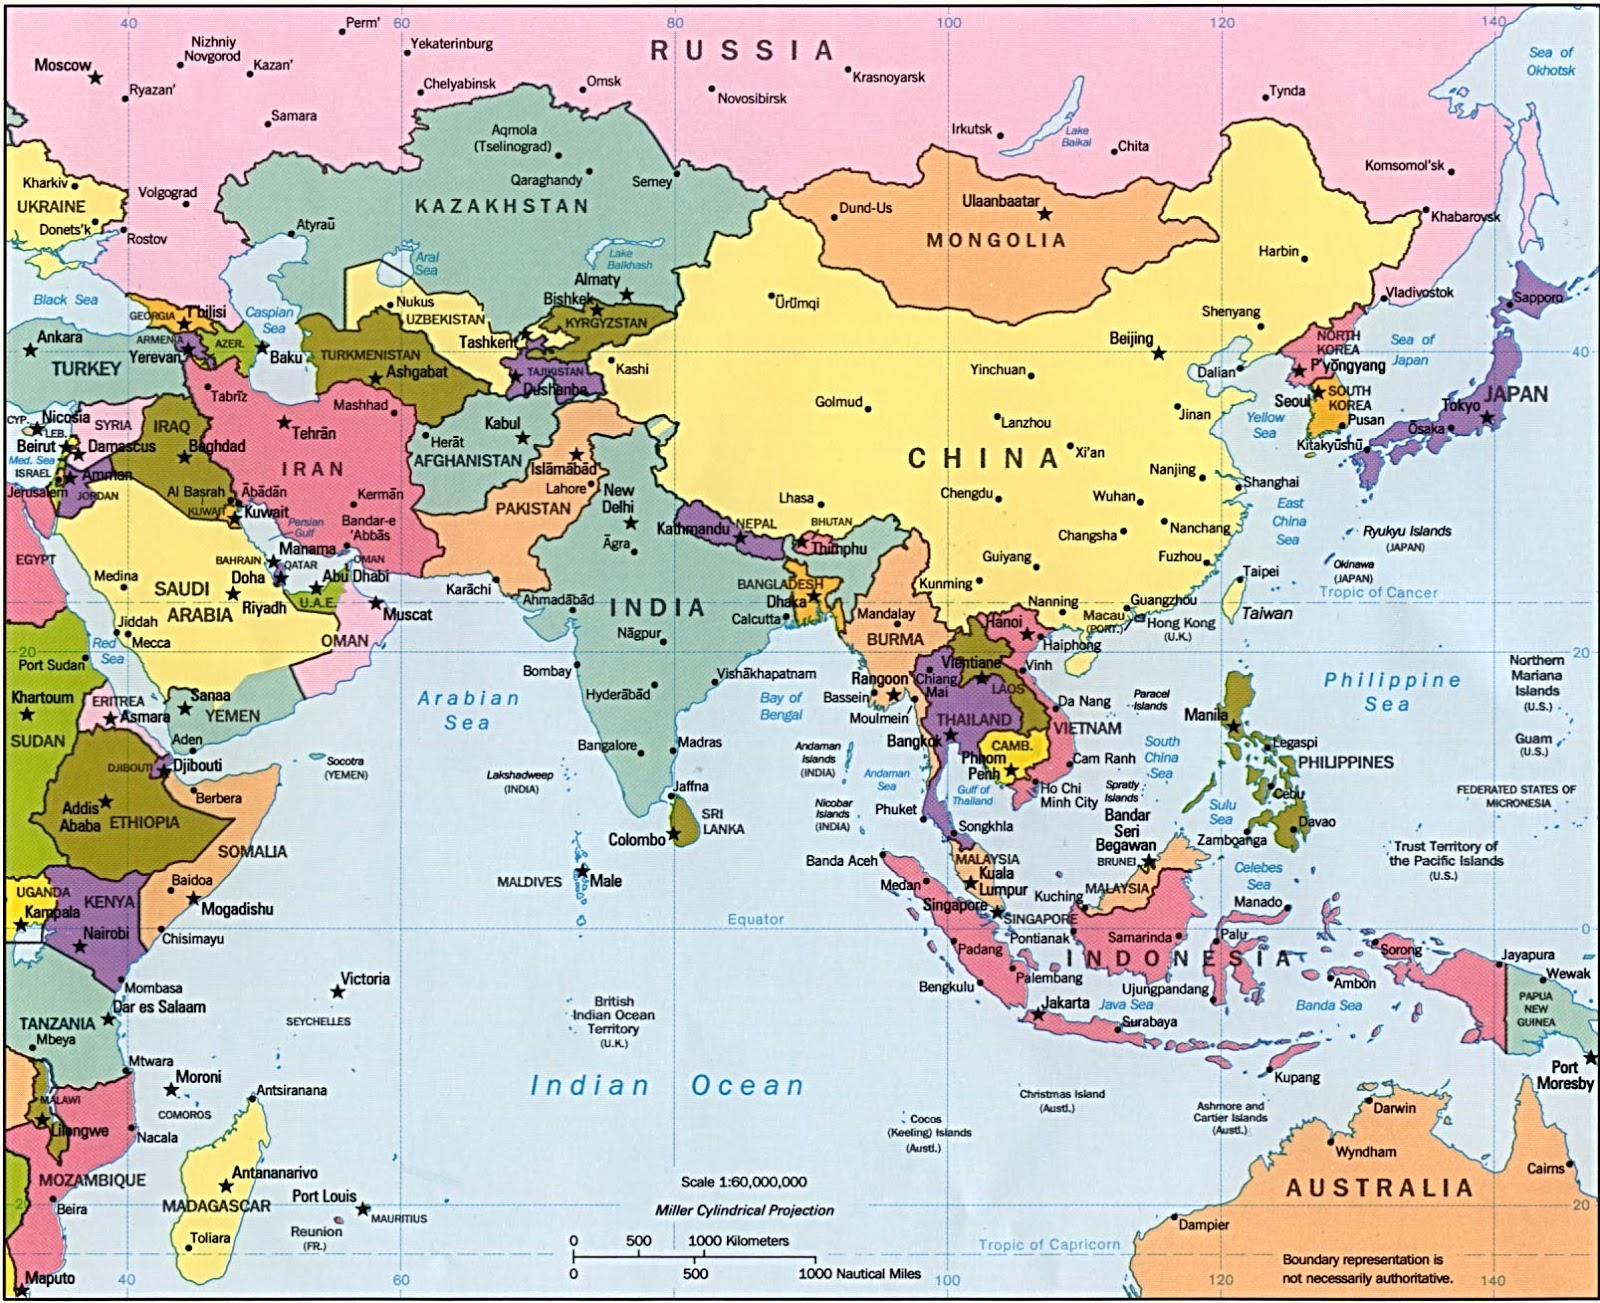 Map Of China And Surrounding Areas.China Map Cities Tourist People S Republic Of China Maps And Flag